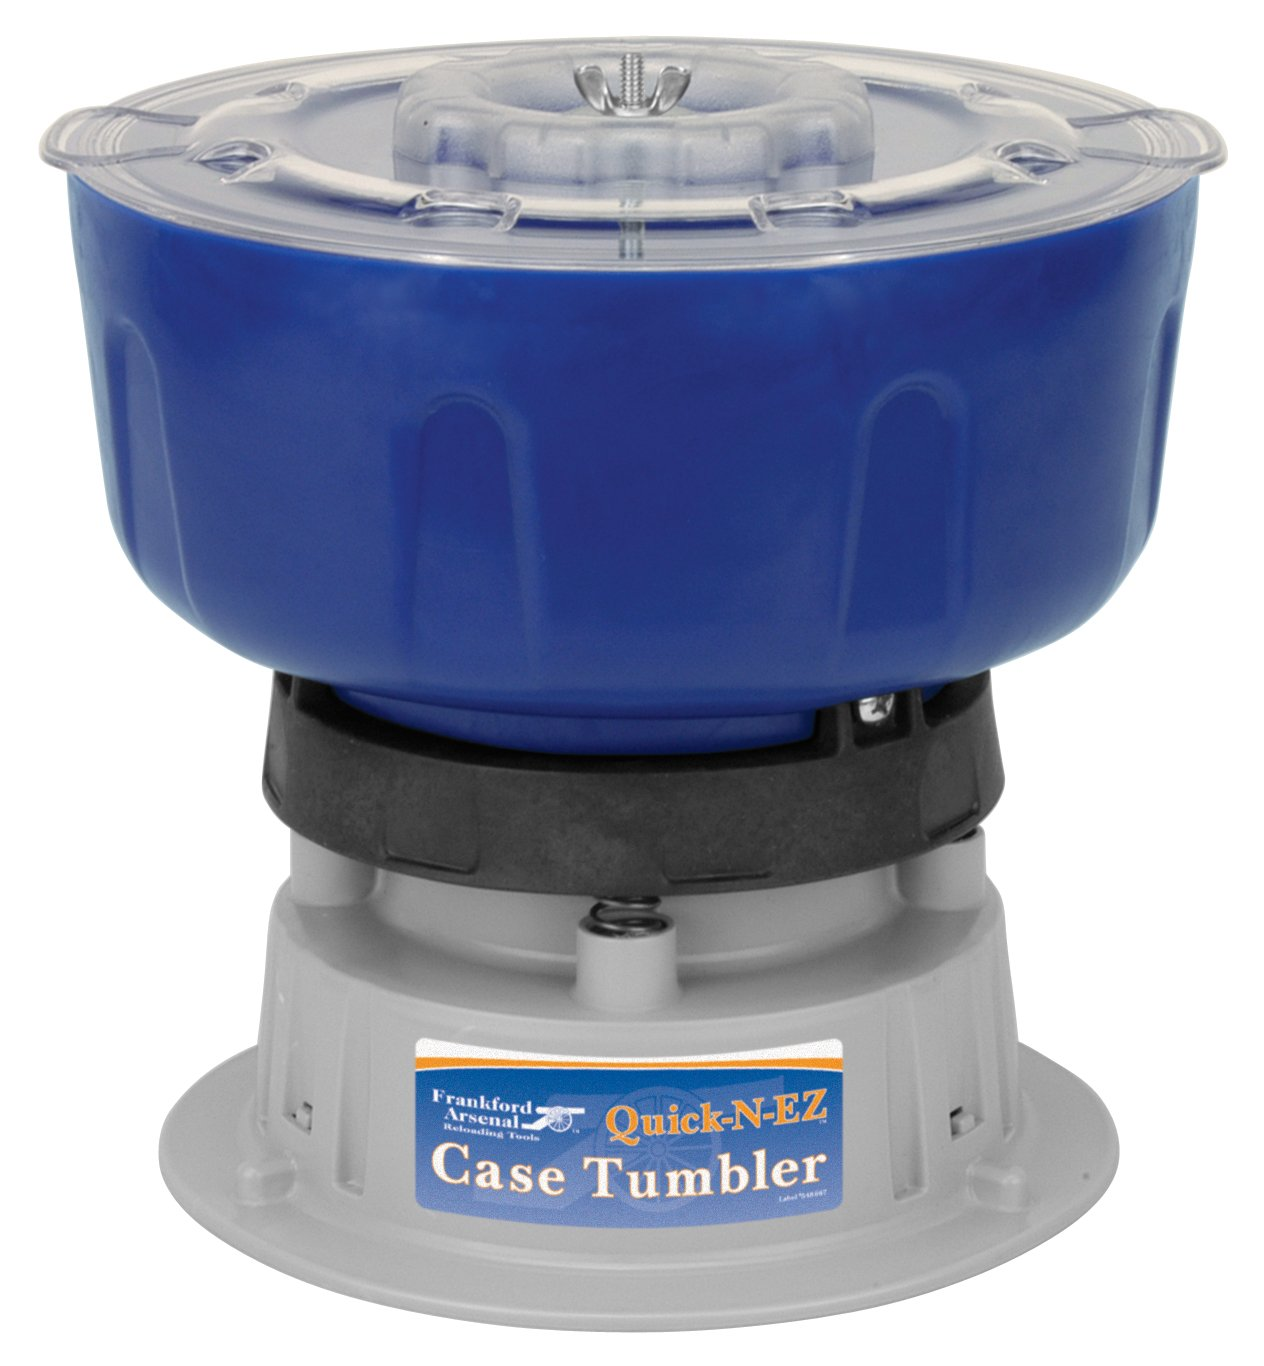 Frankford Arsenal Quick-N-EZ 110V Vibratory Case Tumbler for Cleaning and Polishing for Reloading by Frankford Arsenal